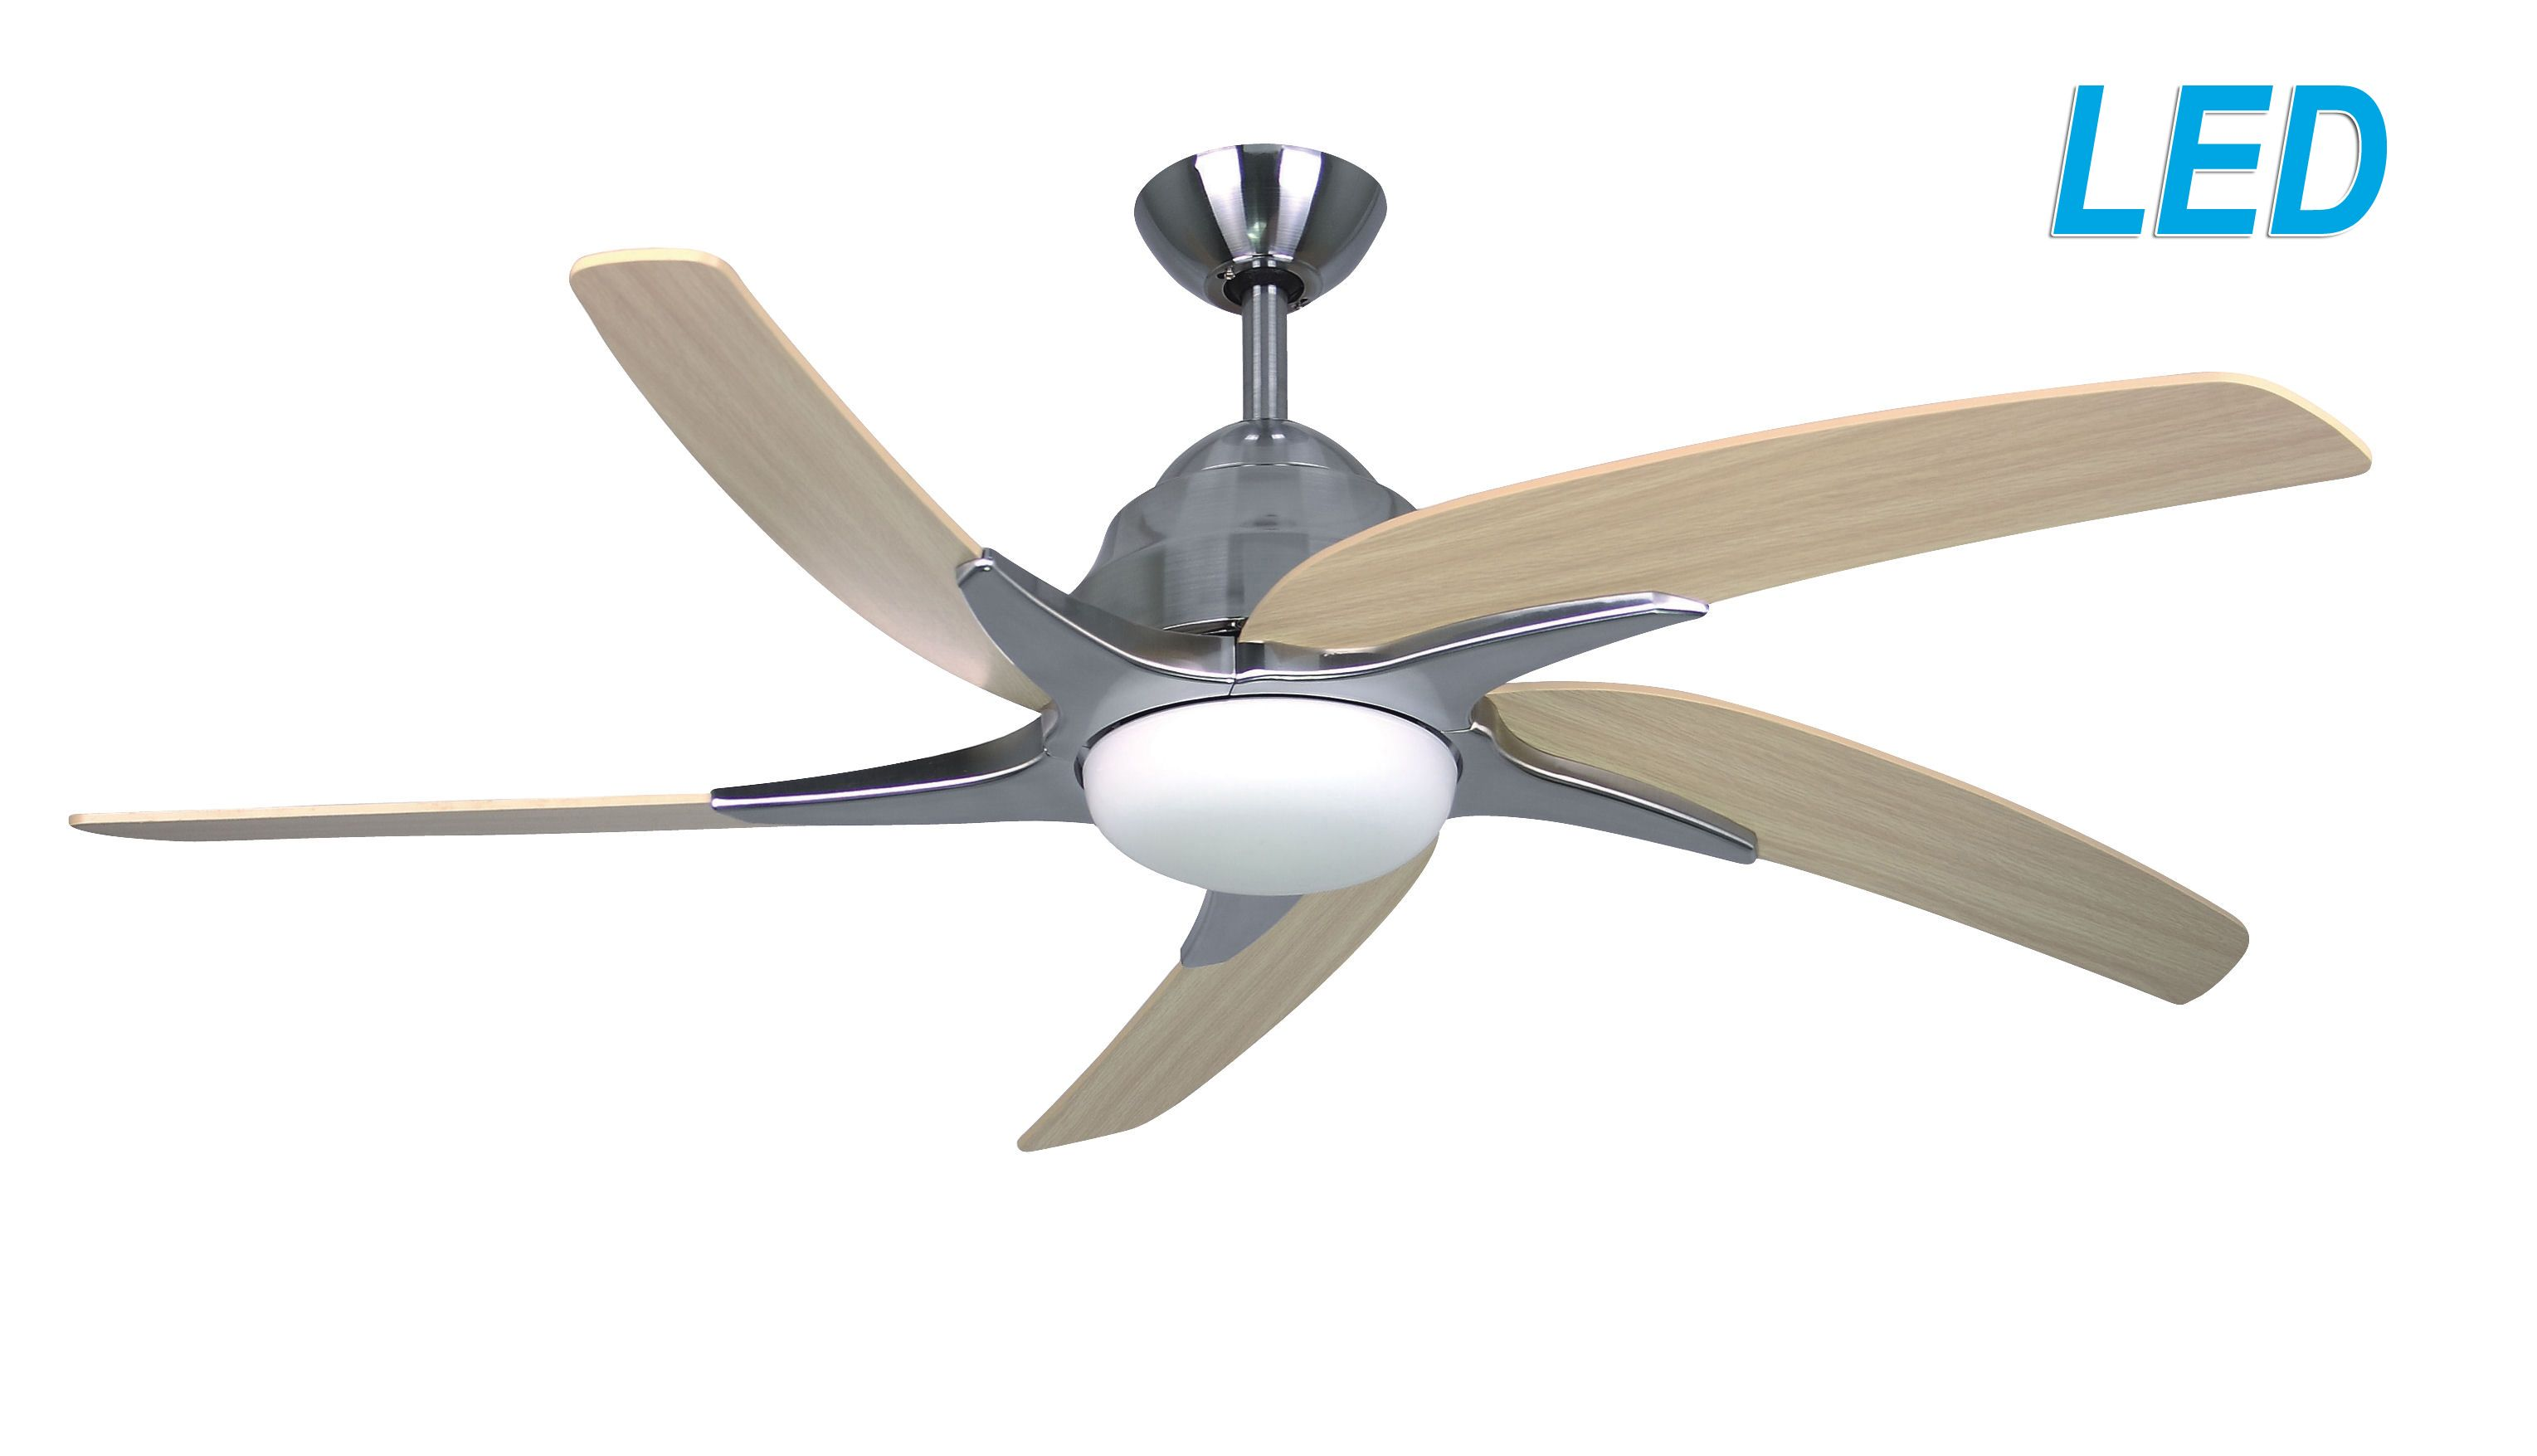 Fantasia elite viper plus 44 stainless steel ceiling fan remote fantasia elite viper plus 44 stainless steel ceiling fan remote control led light 116028 mozeypictures